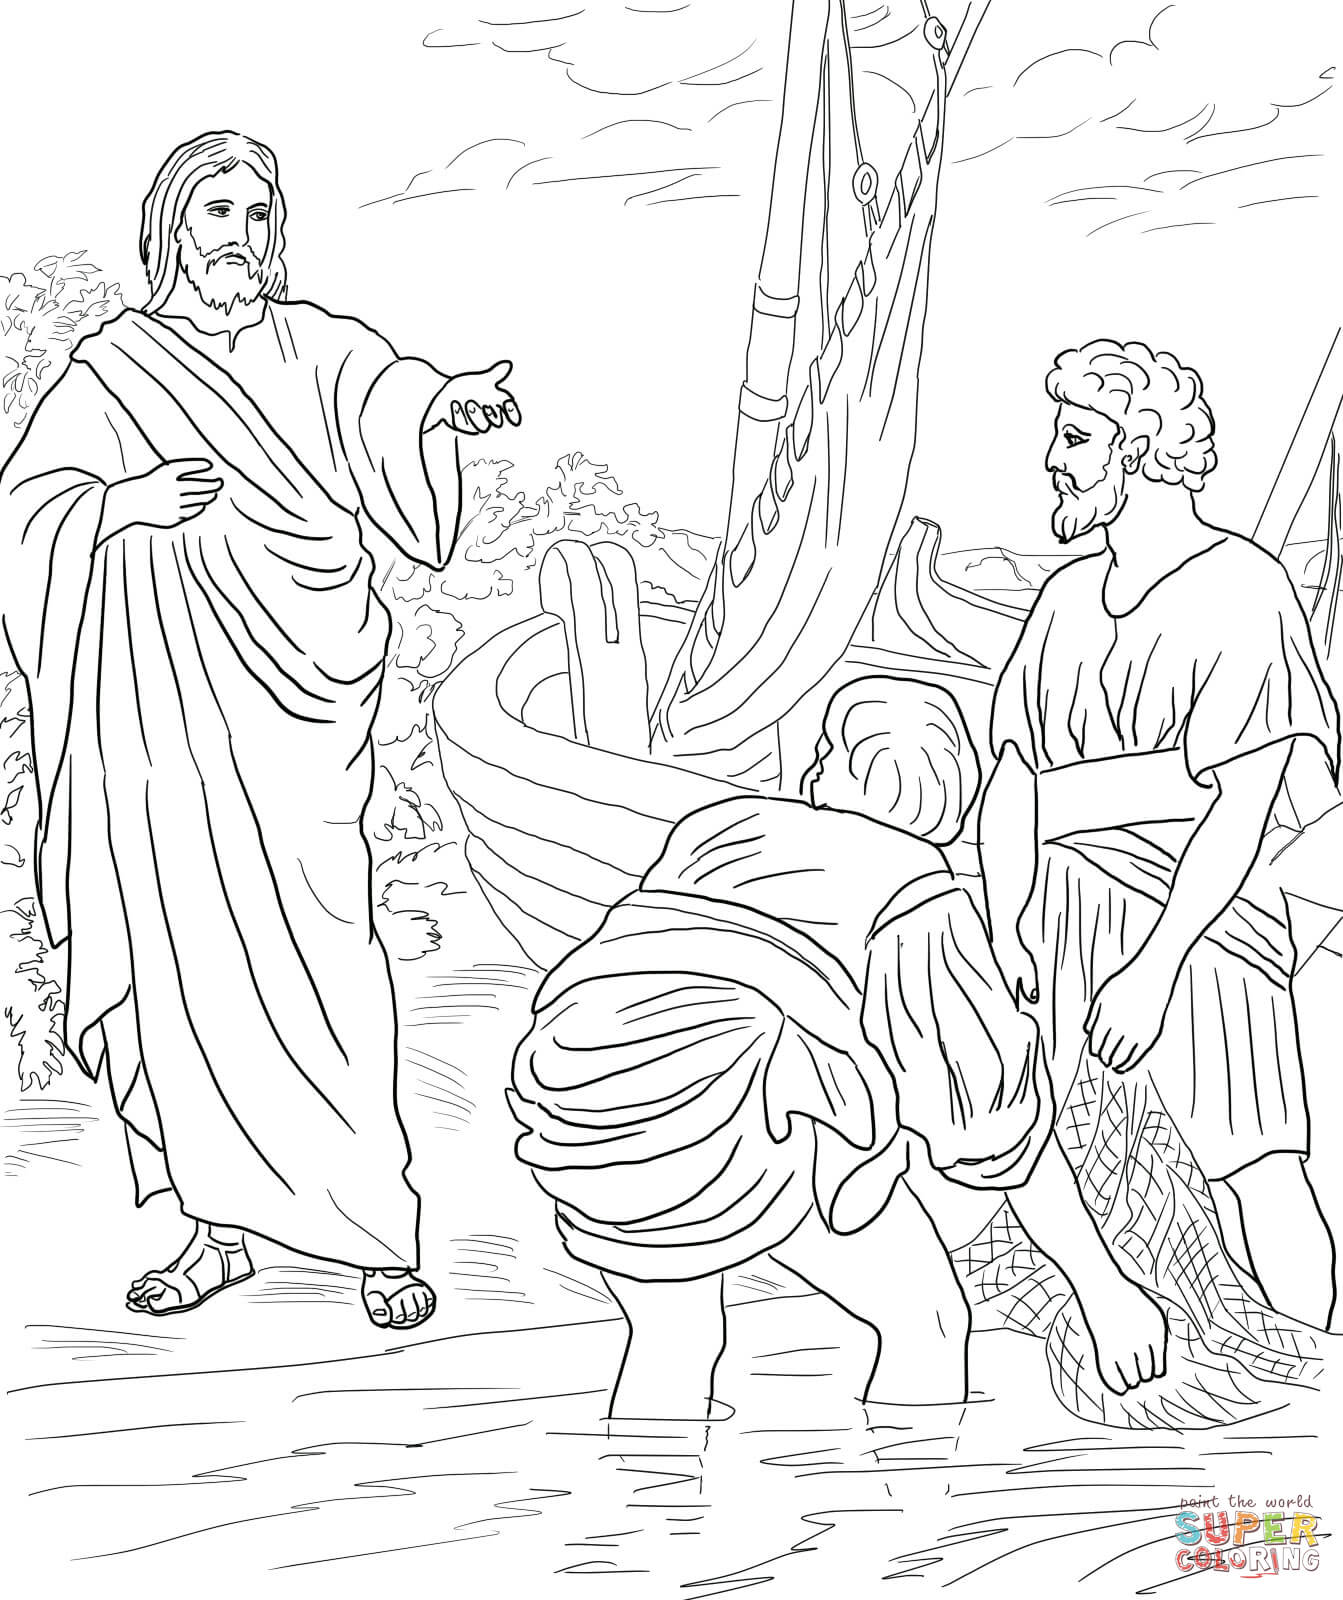 gangway to galilee coloring pages - photo#31